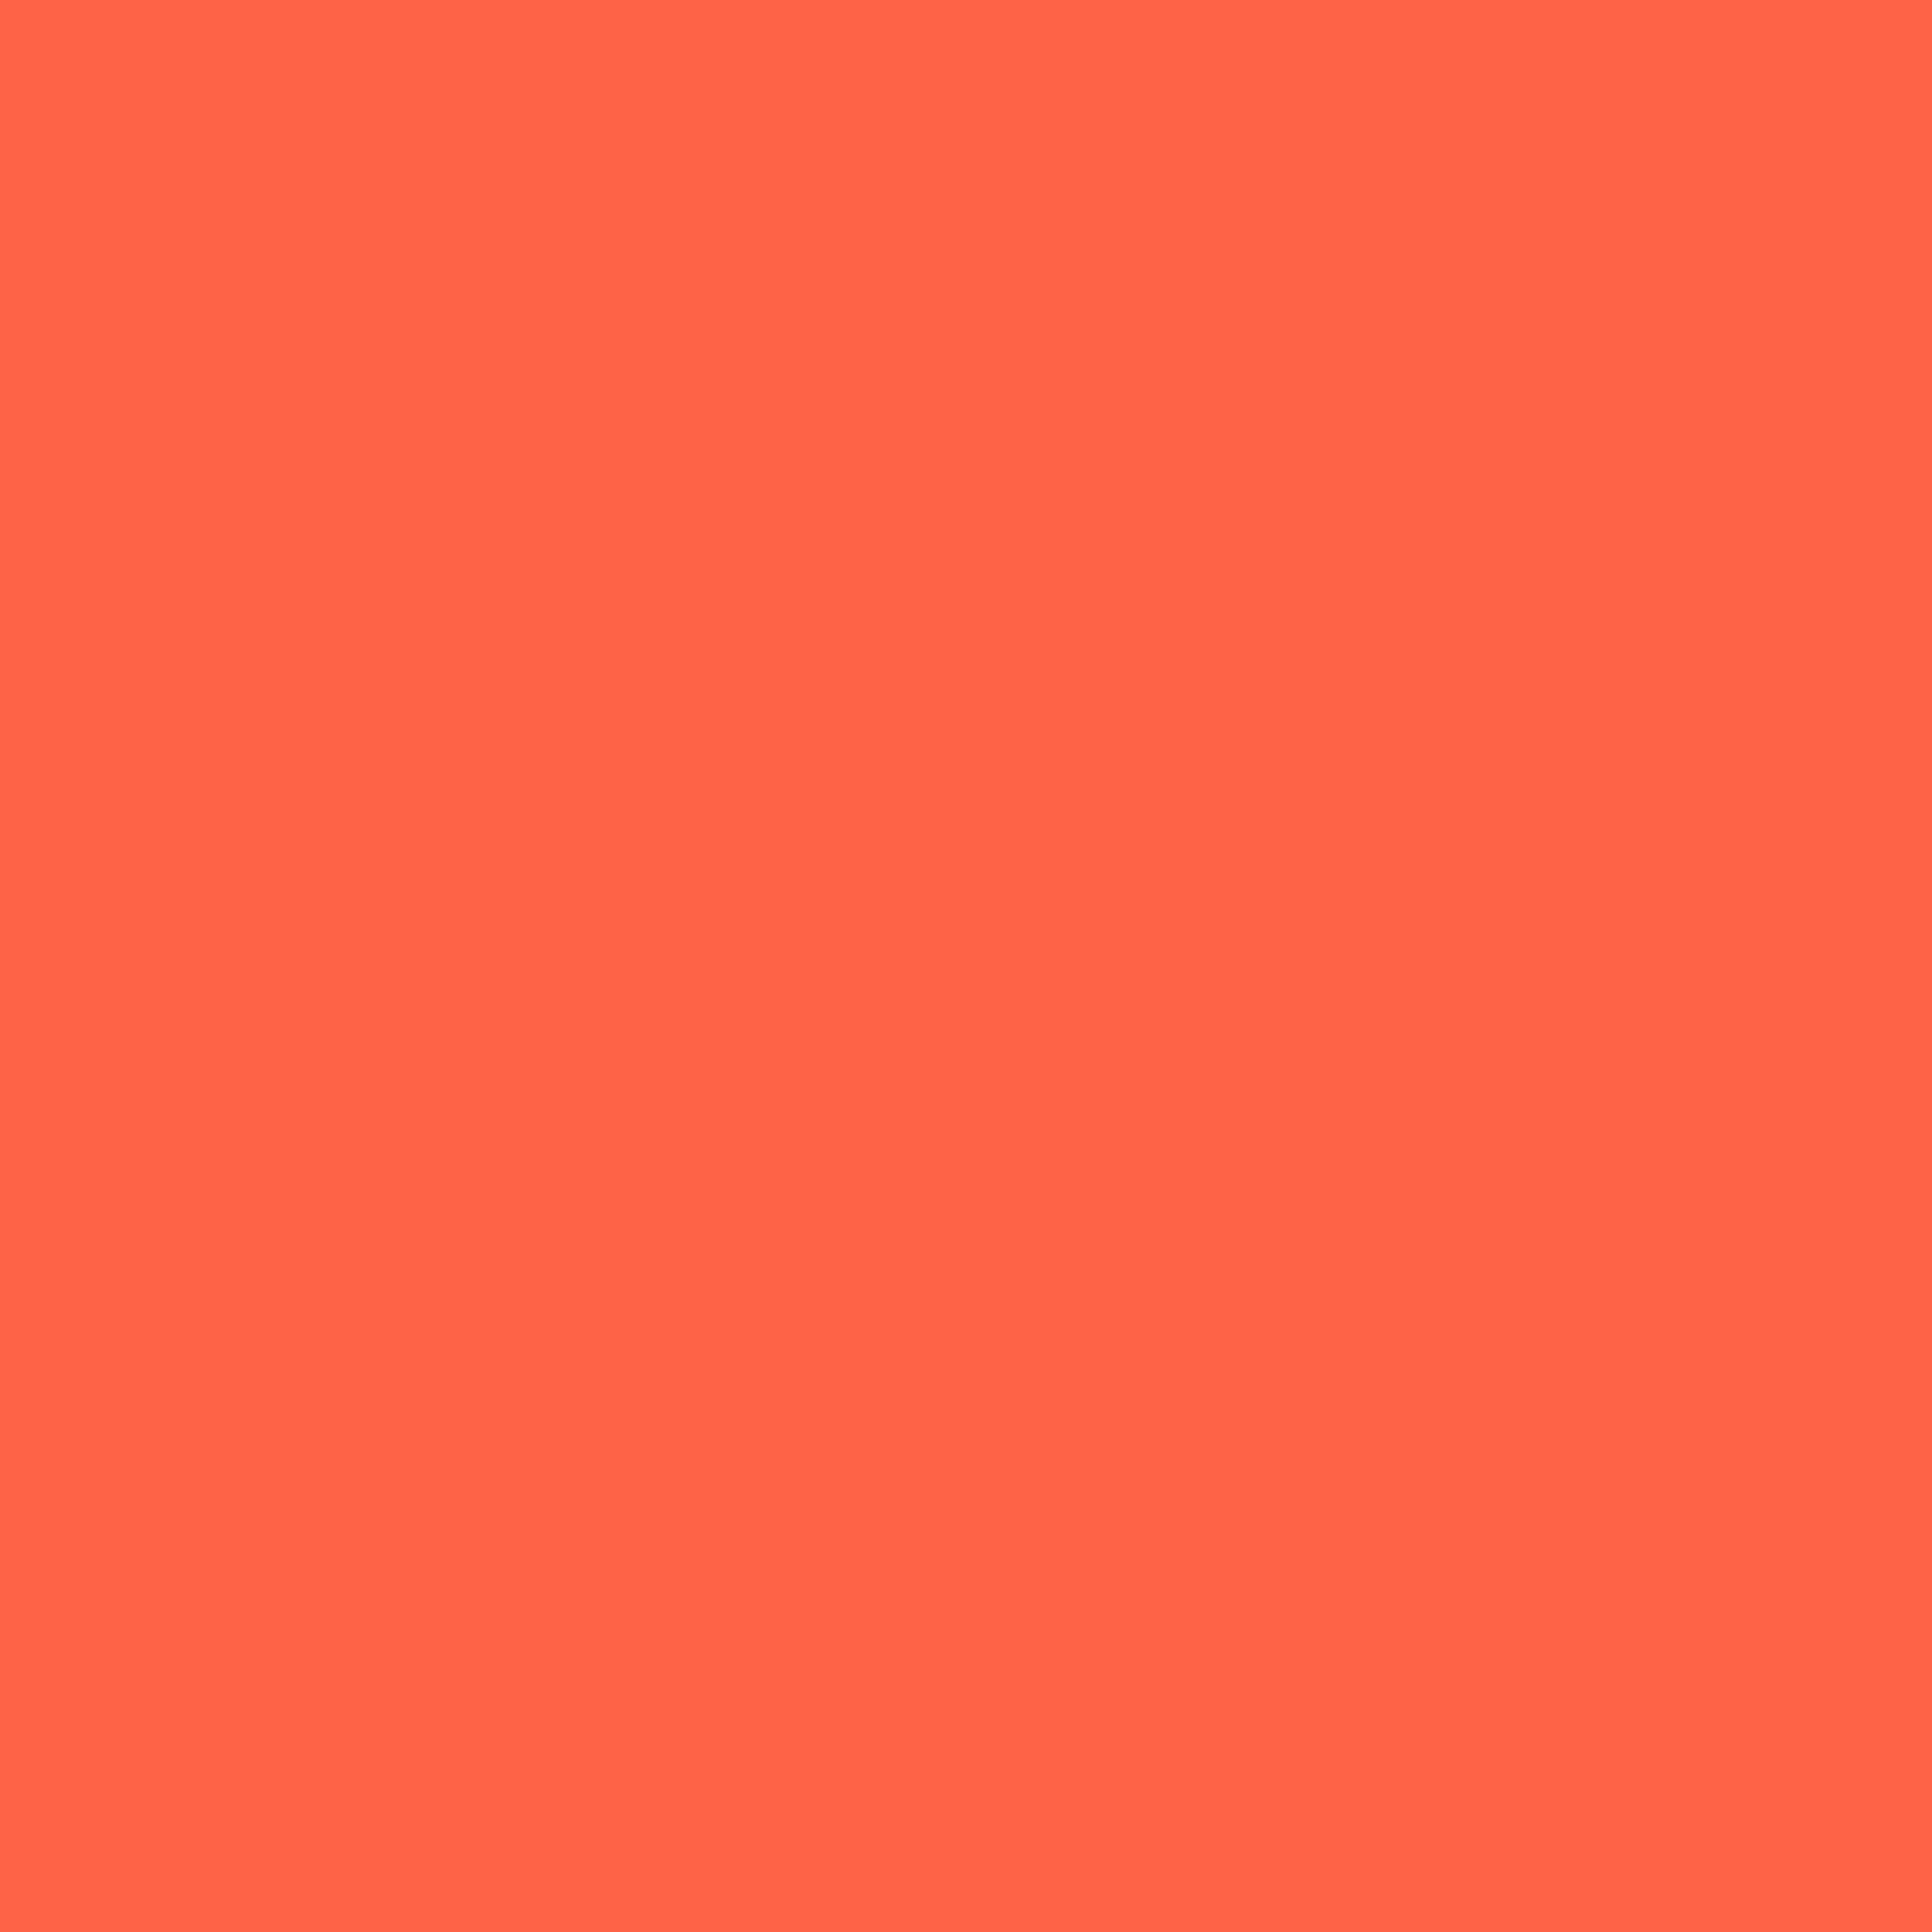 2732x2732 Tomato Solid Color Background